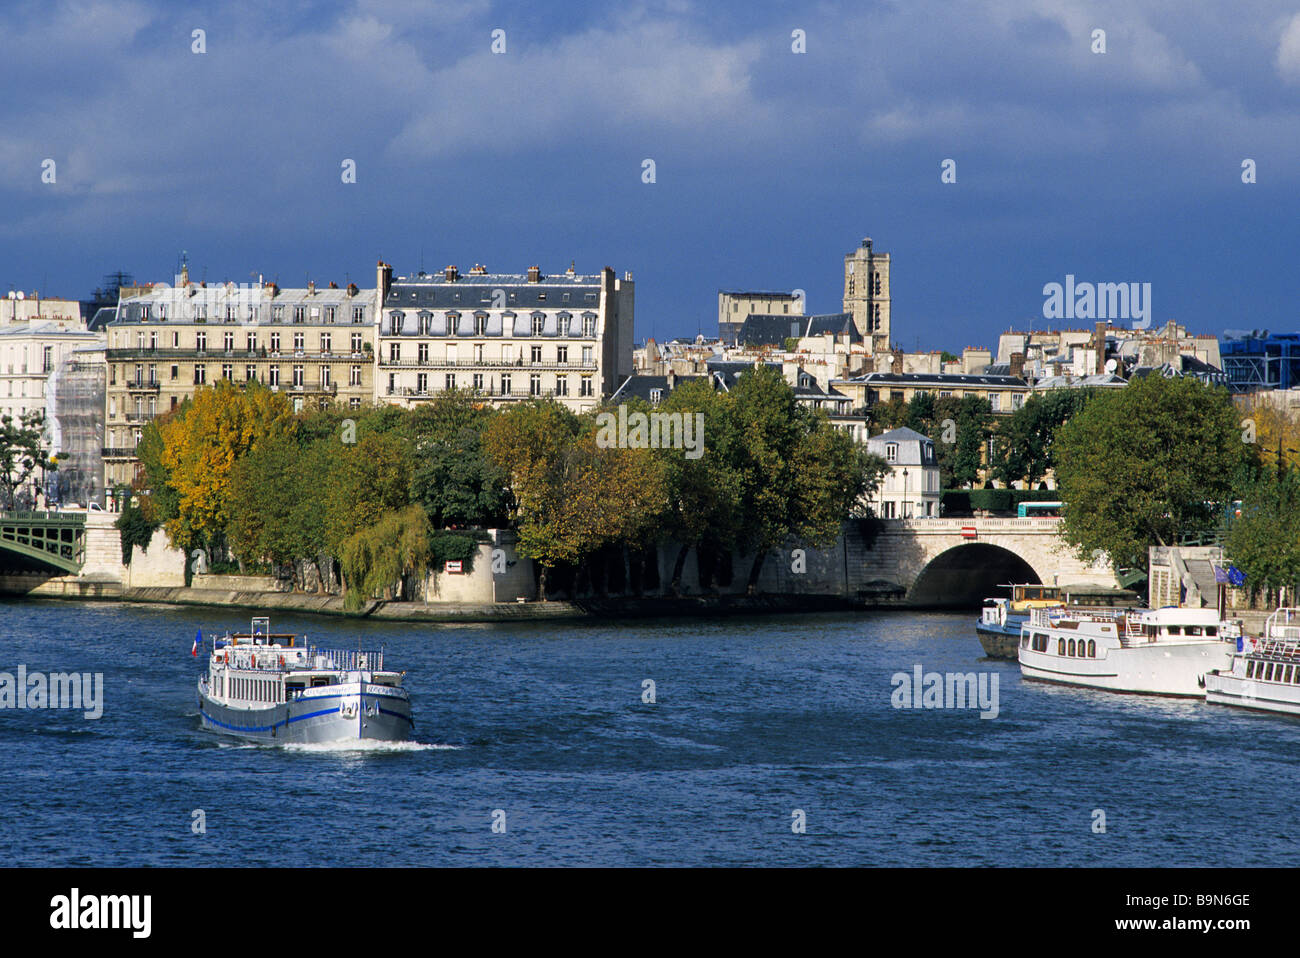 France, Paris, banks of the Seine river classified as World Heritage by UNESCO, Pont de Sully, view of the Seine - Stock Image